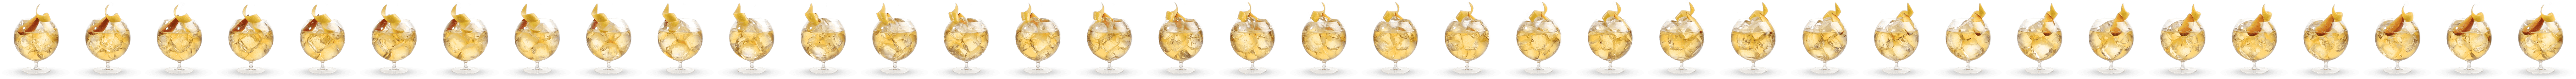 Cognac and Tonic